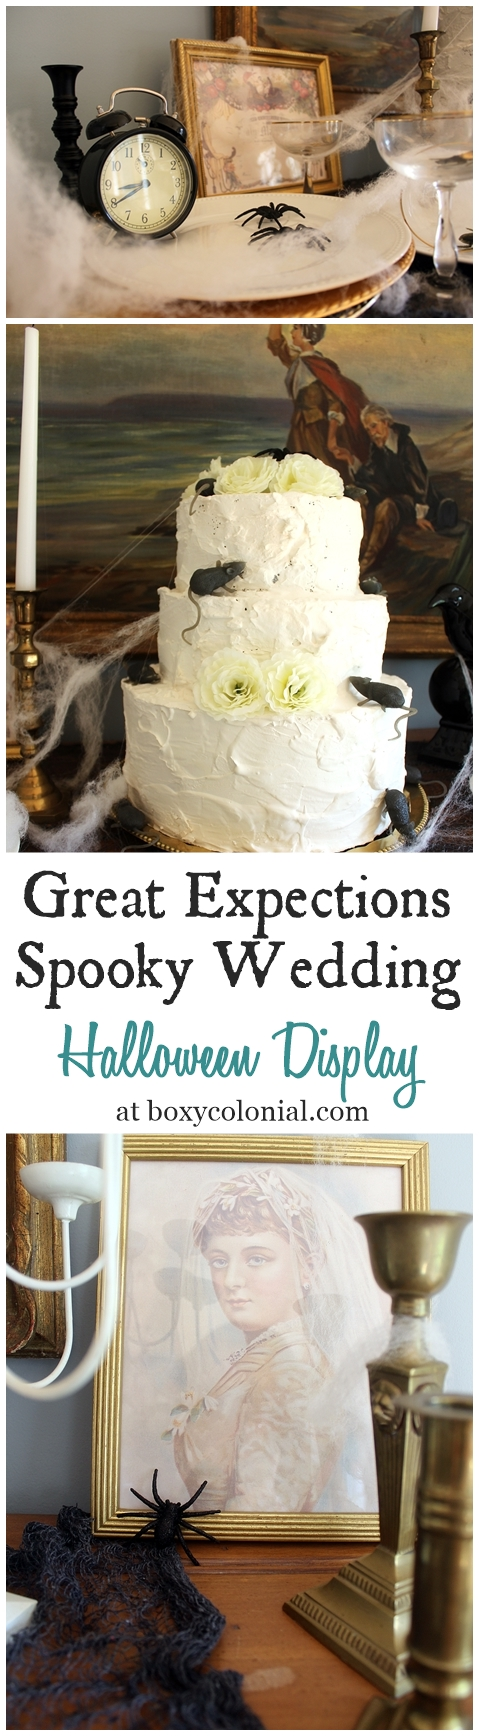 Recreate Miss Havisham's Spooky Wedding feast from Great Expectations for Halloween